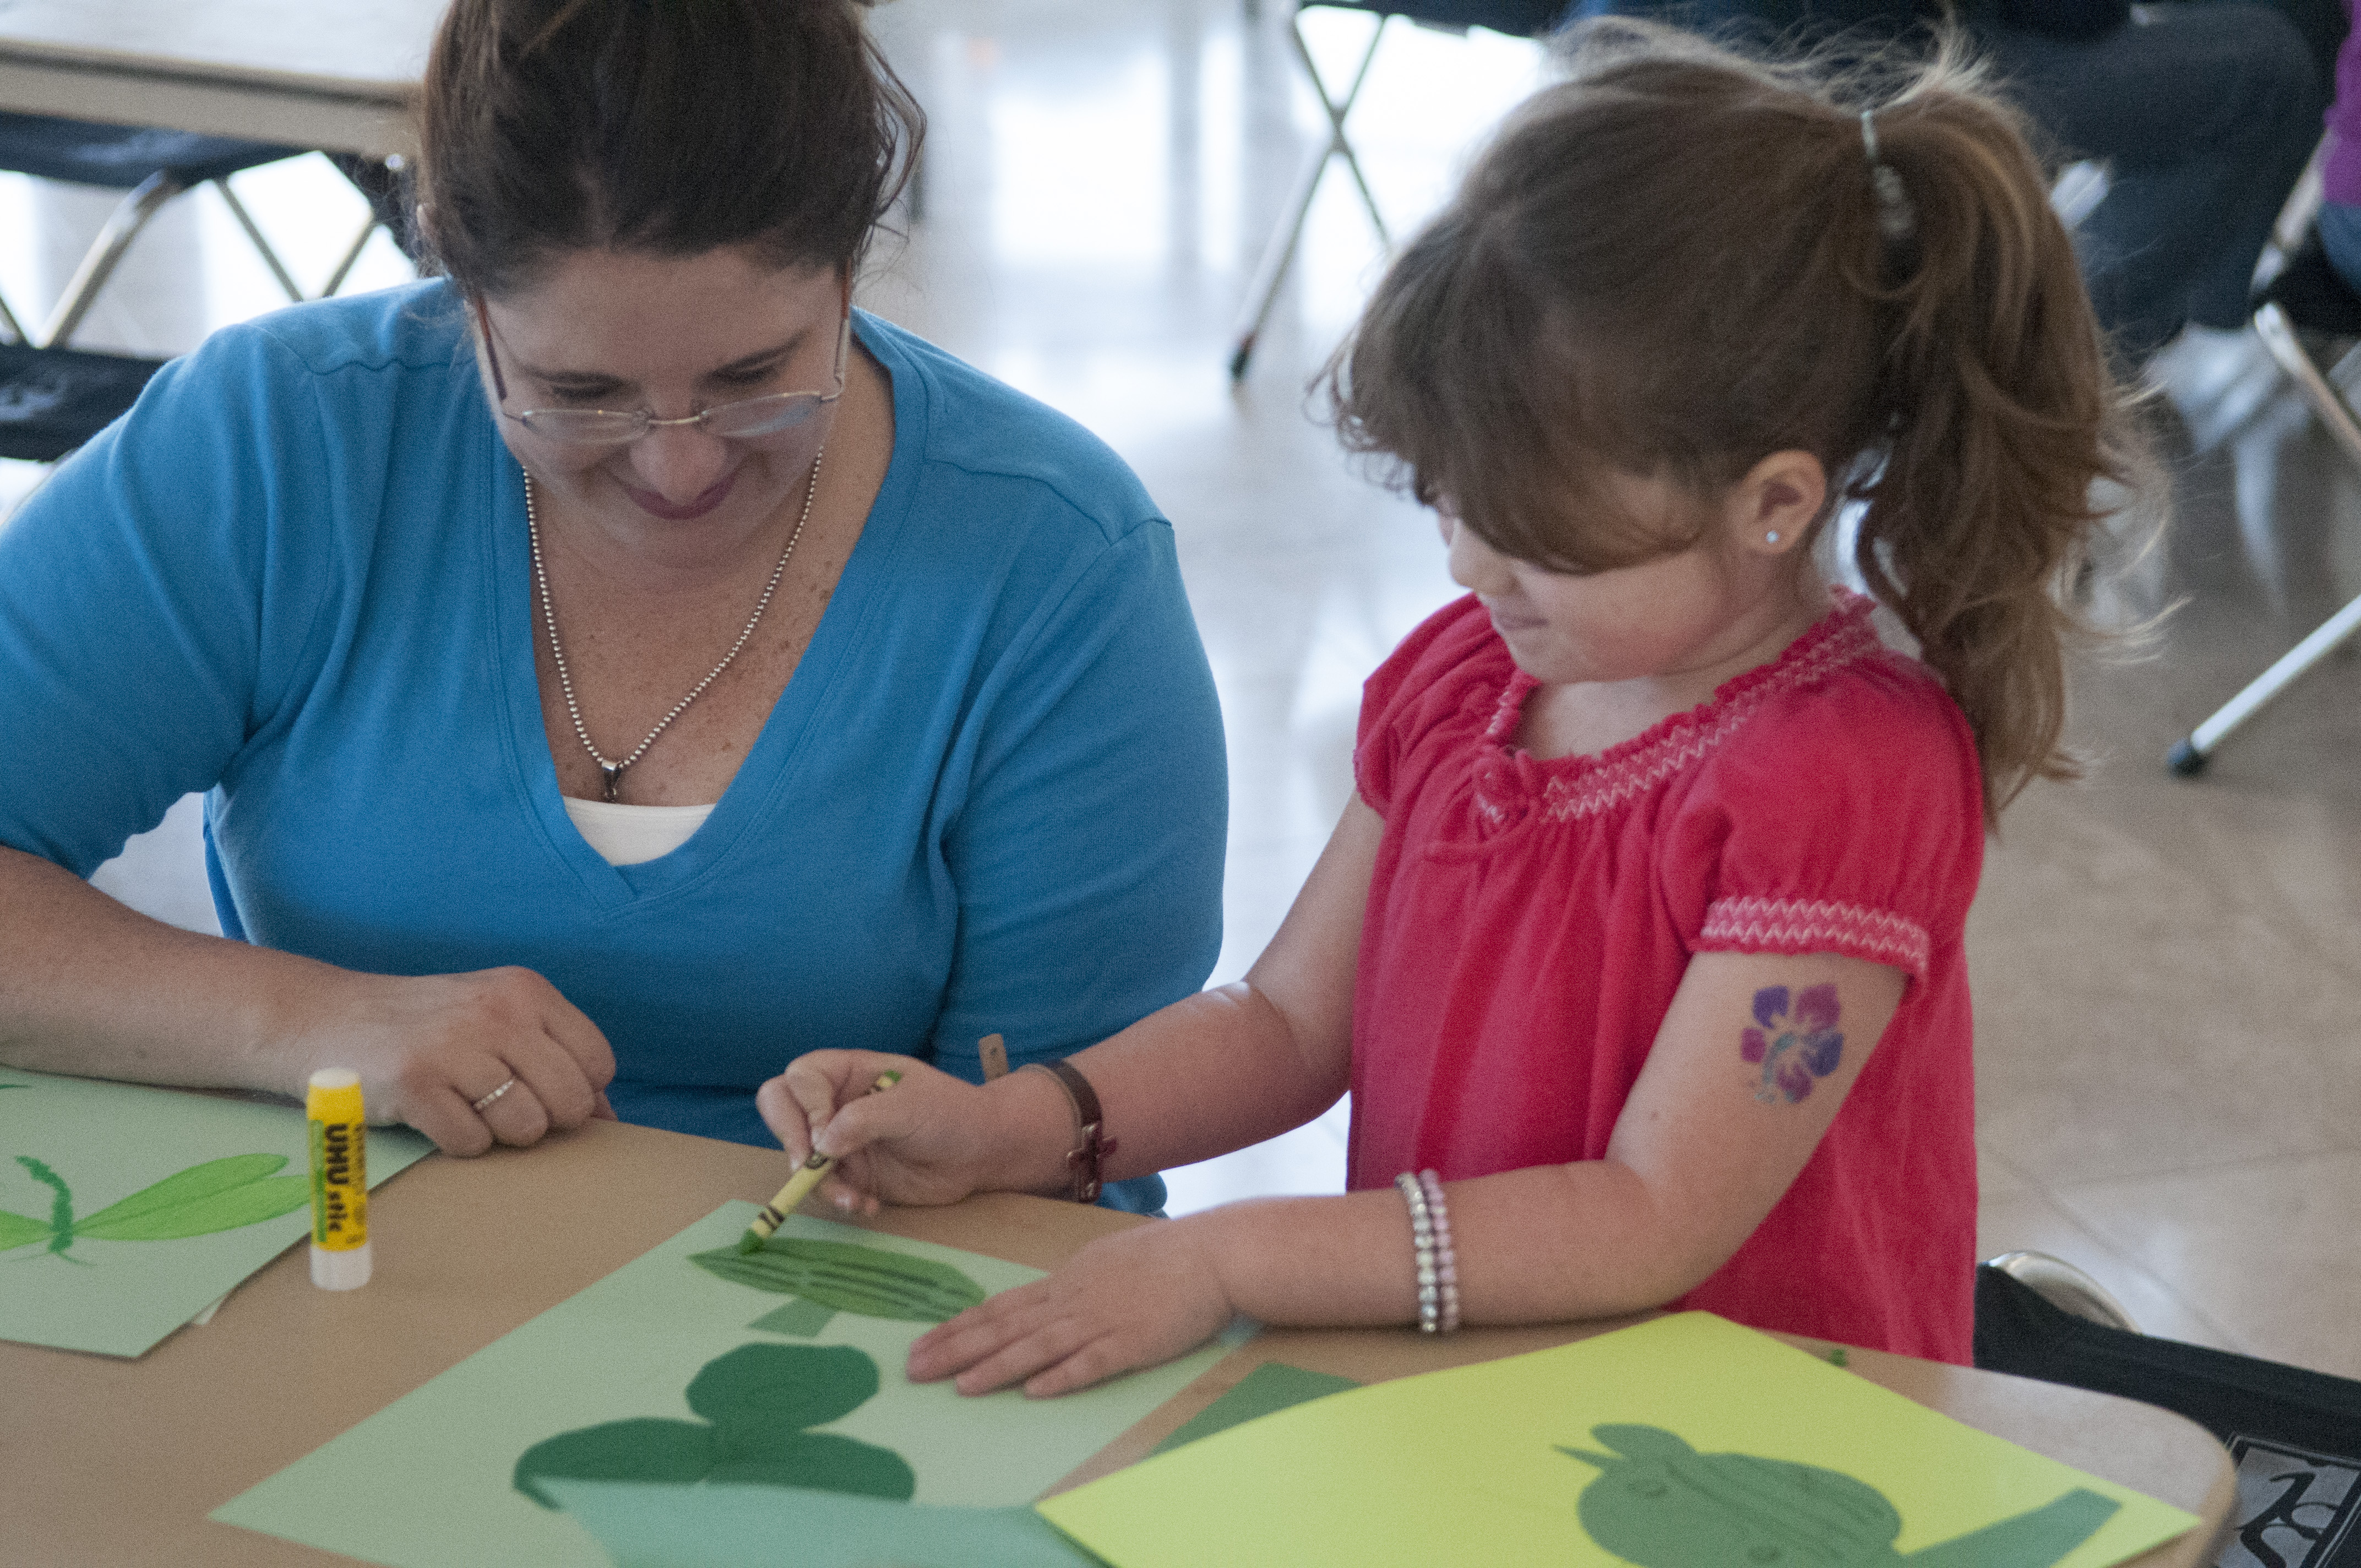 Woman works on an art project with a child.